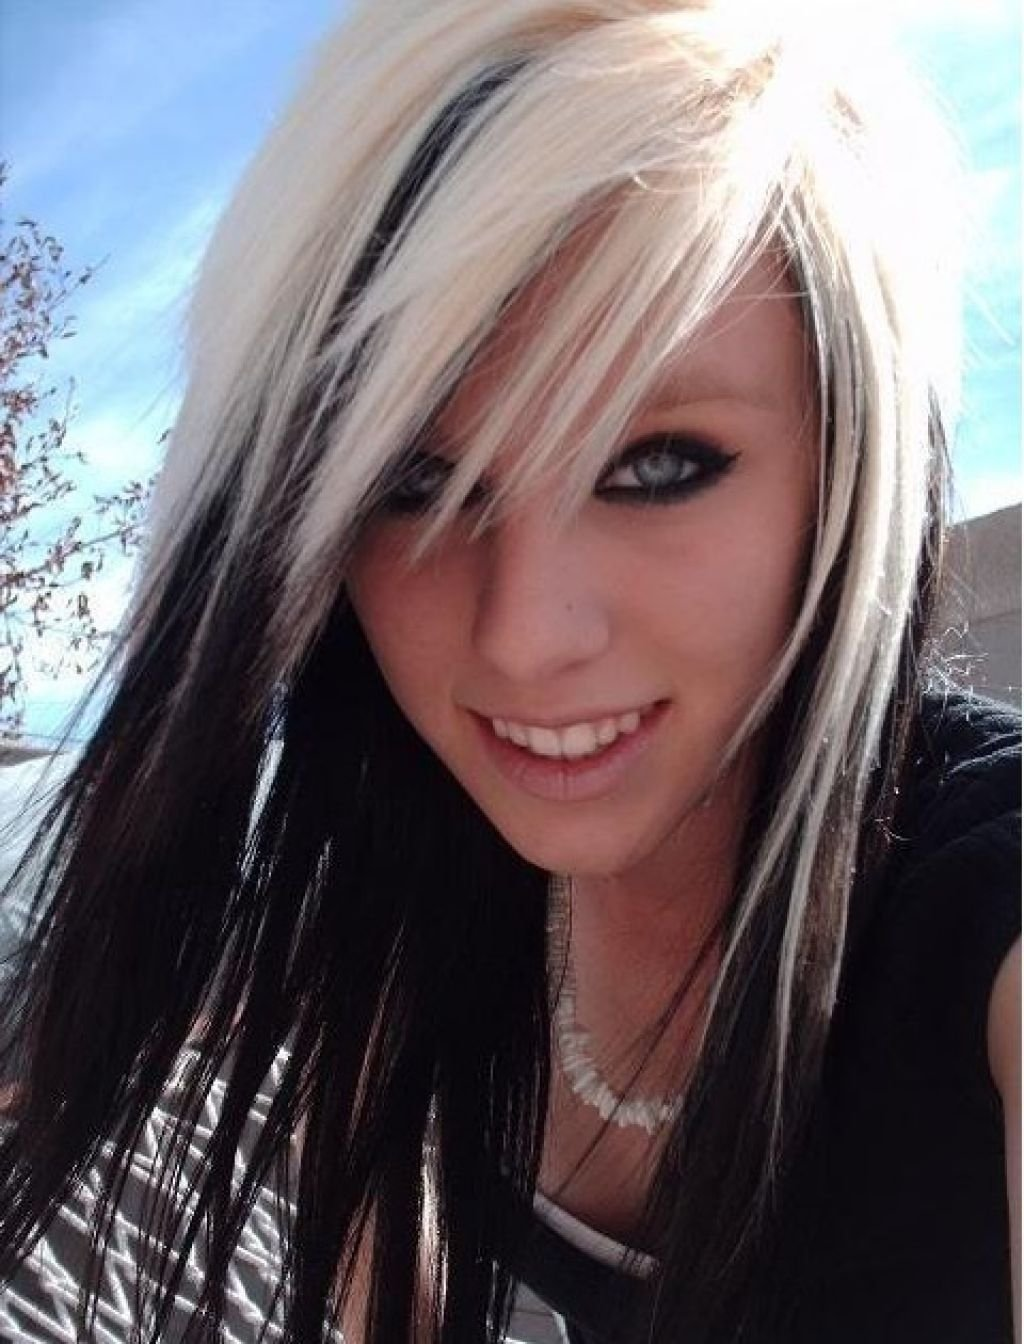 10 Best Blonde And Black Hair Color Ideas amazing hair color ideas blonde with black underneath u sandefur 1 2020